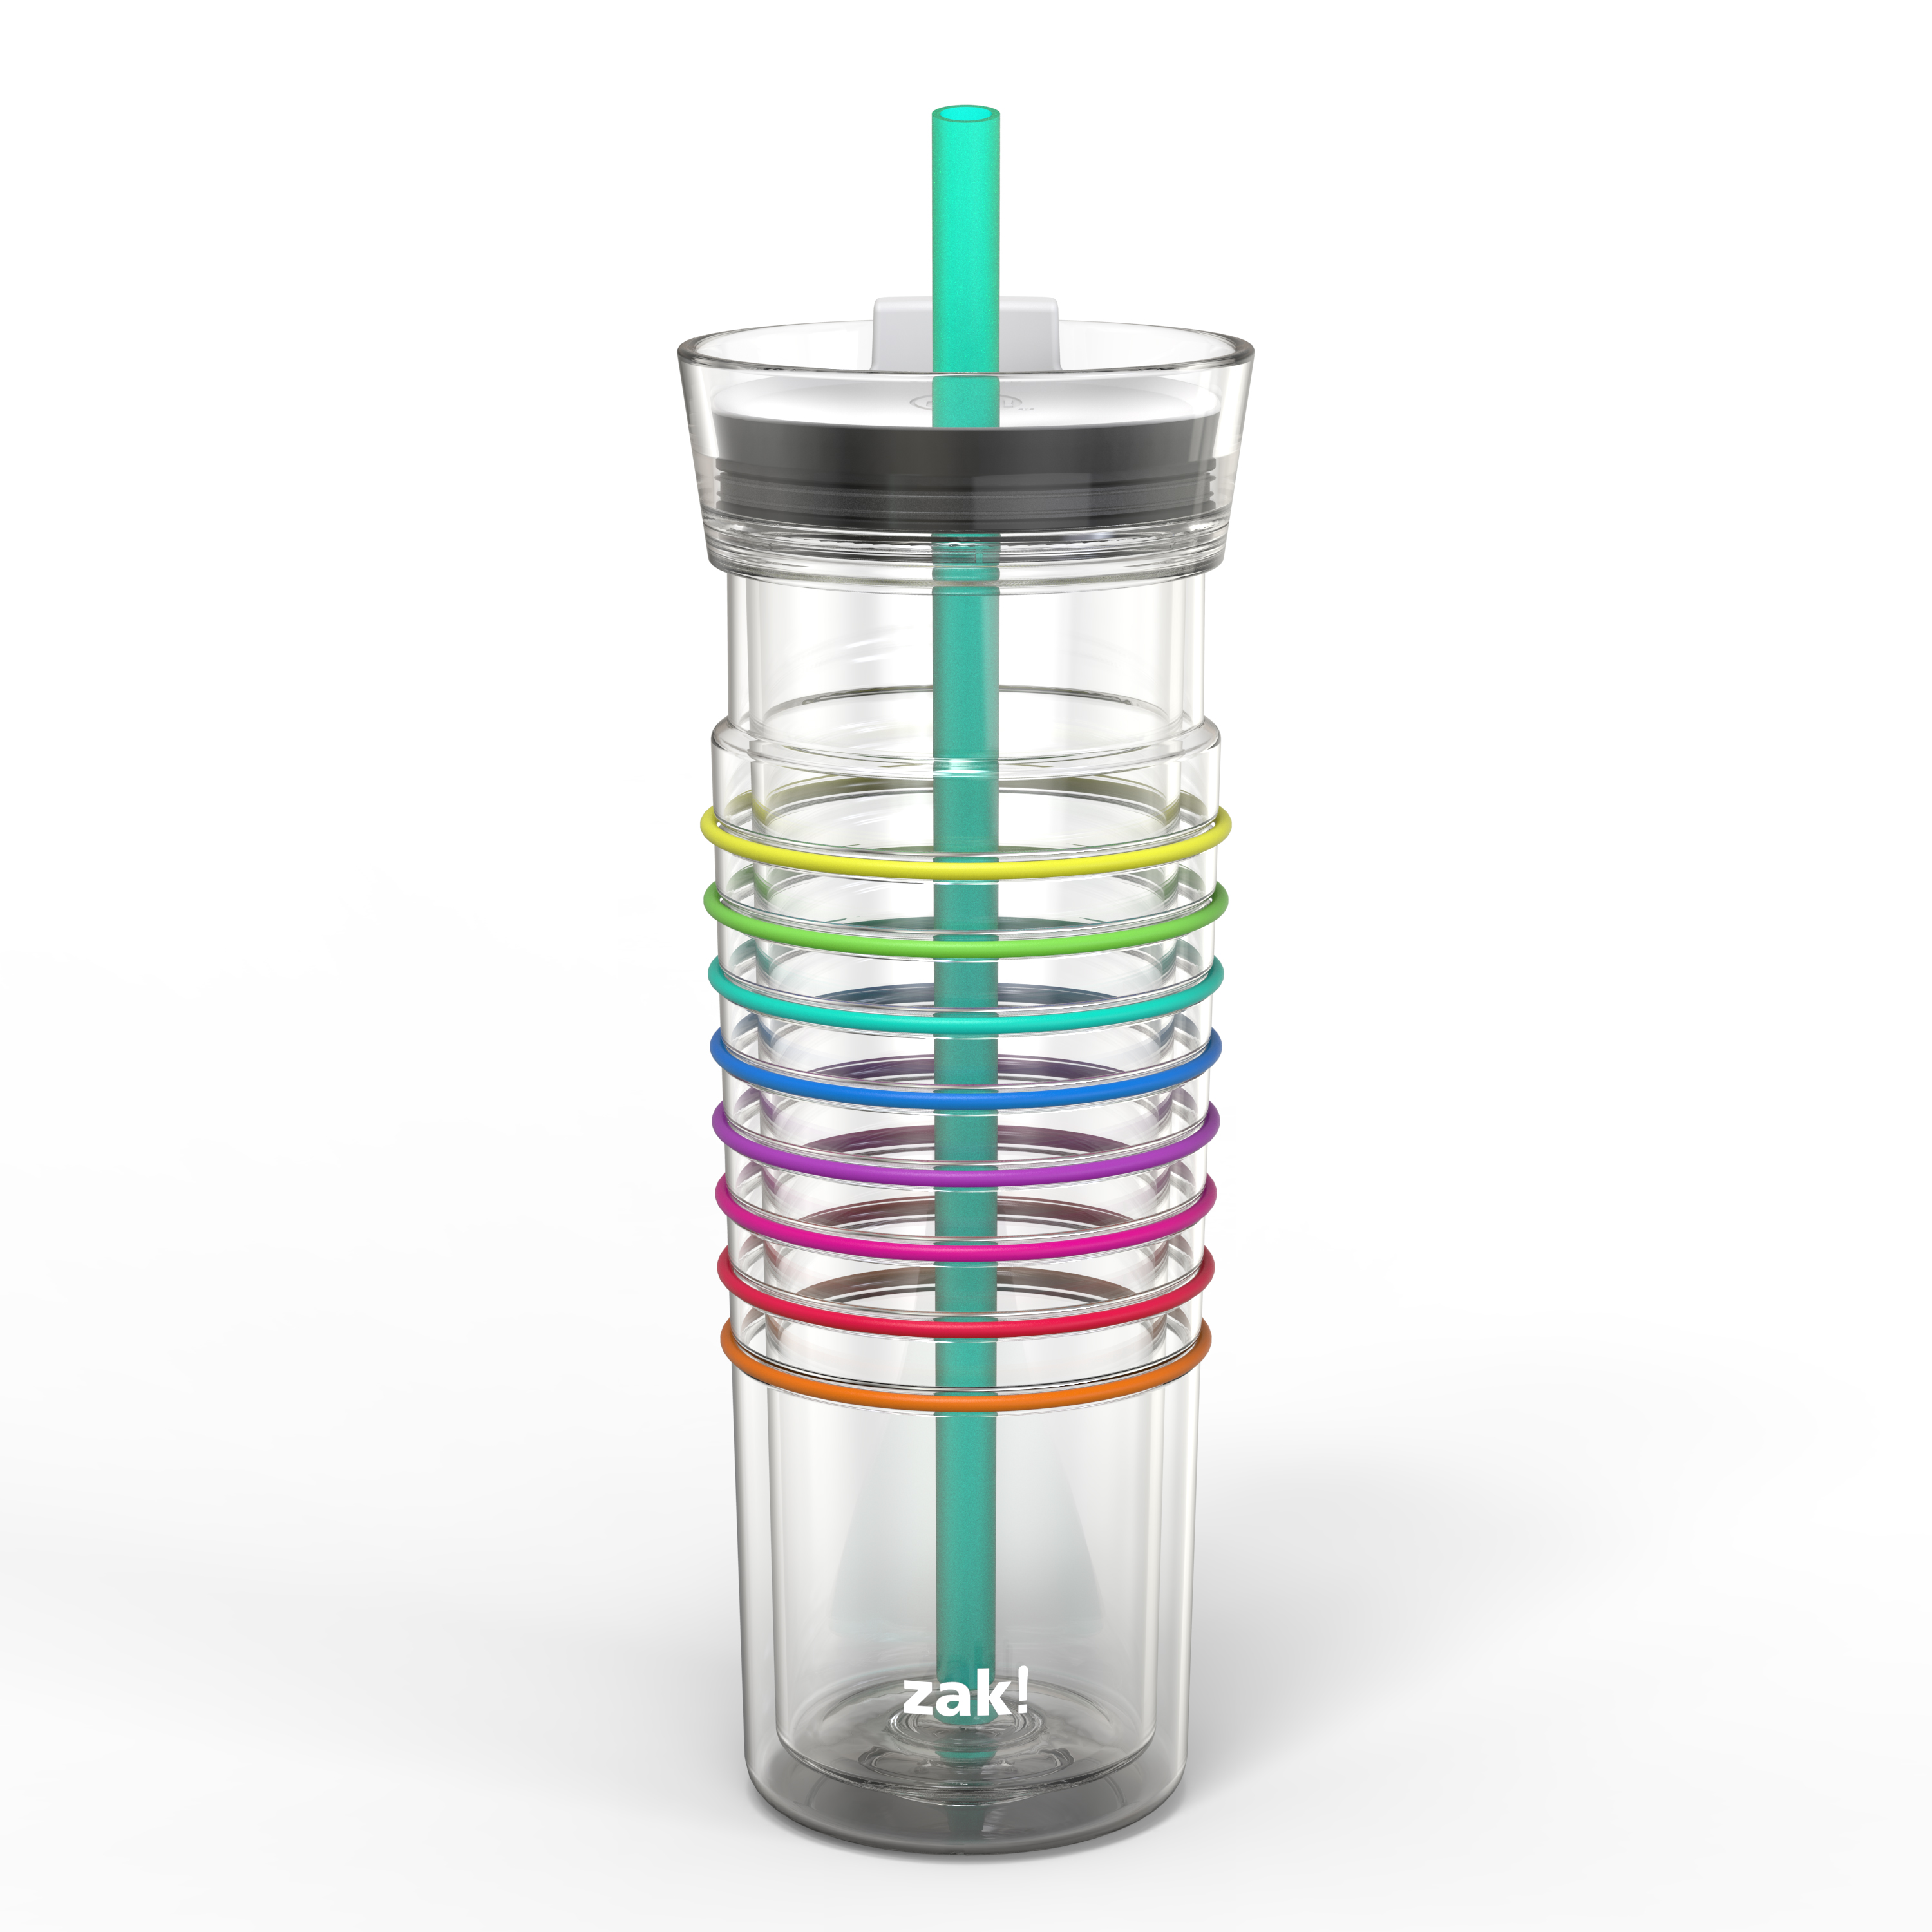 Zak! Hydration 20 ounce Insulated Tumbler, Clear slideshow image 2